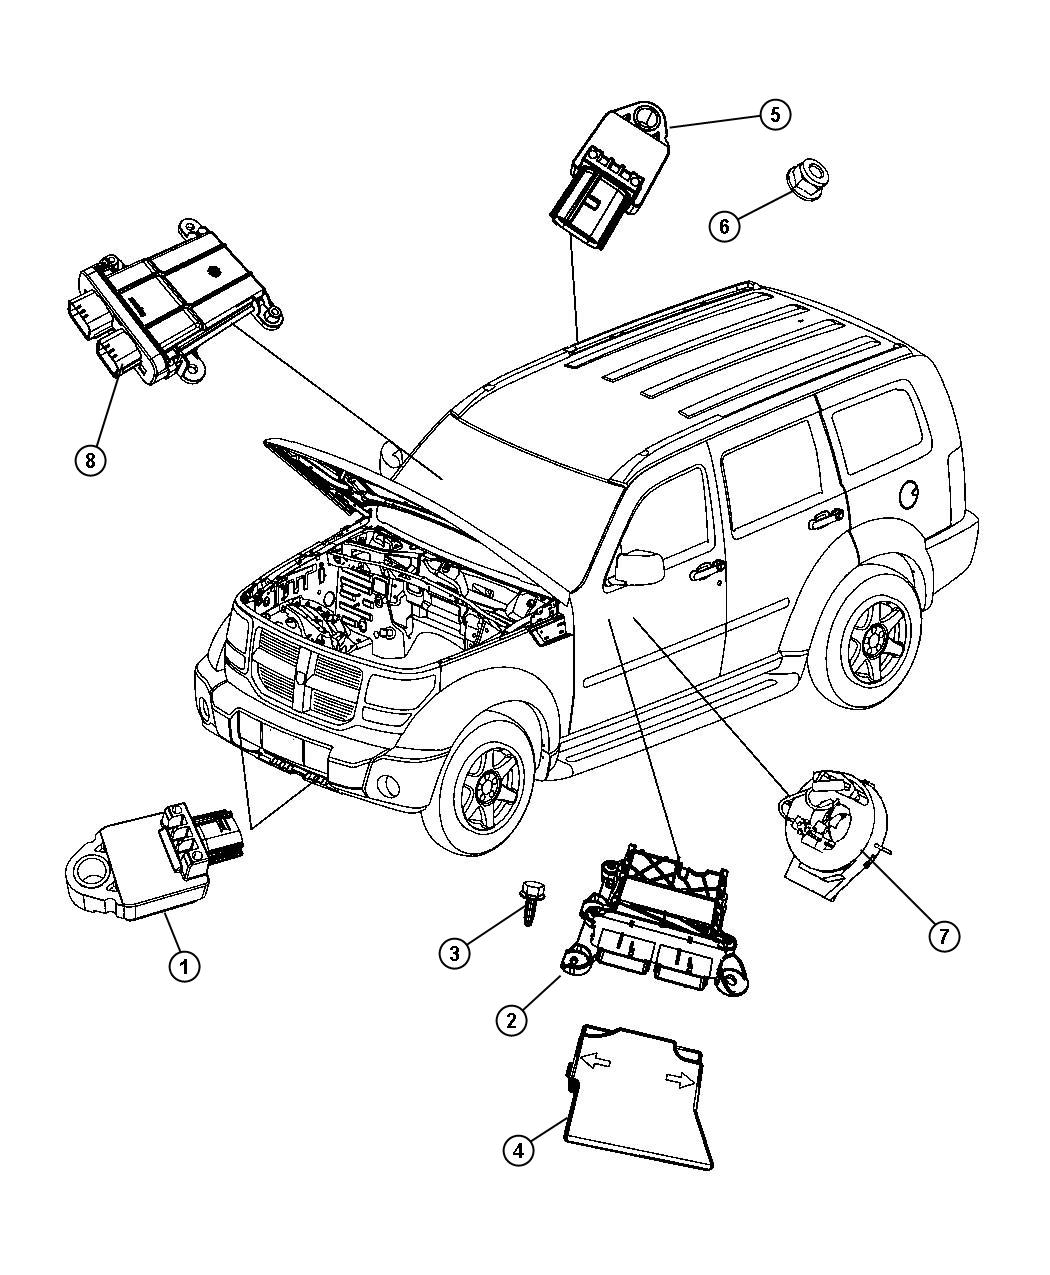 03 Jeep Liberty O2 Sensor Location Subaru FB20 Engine